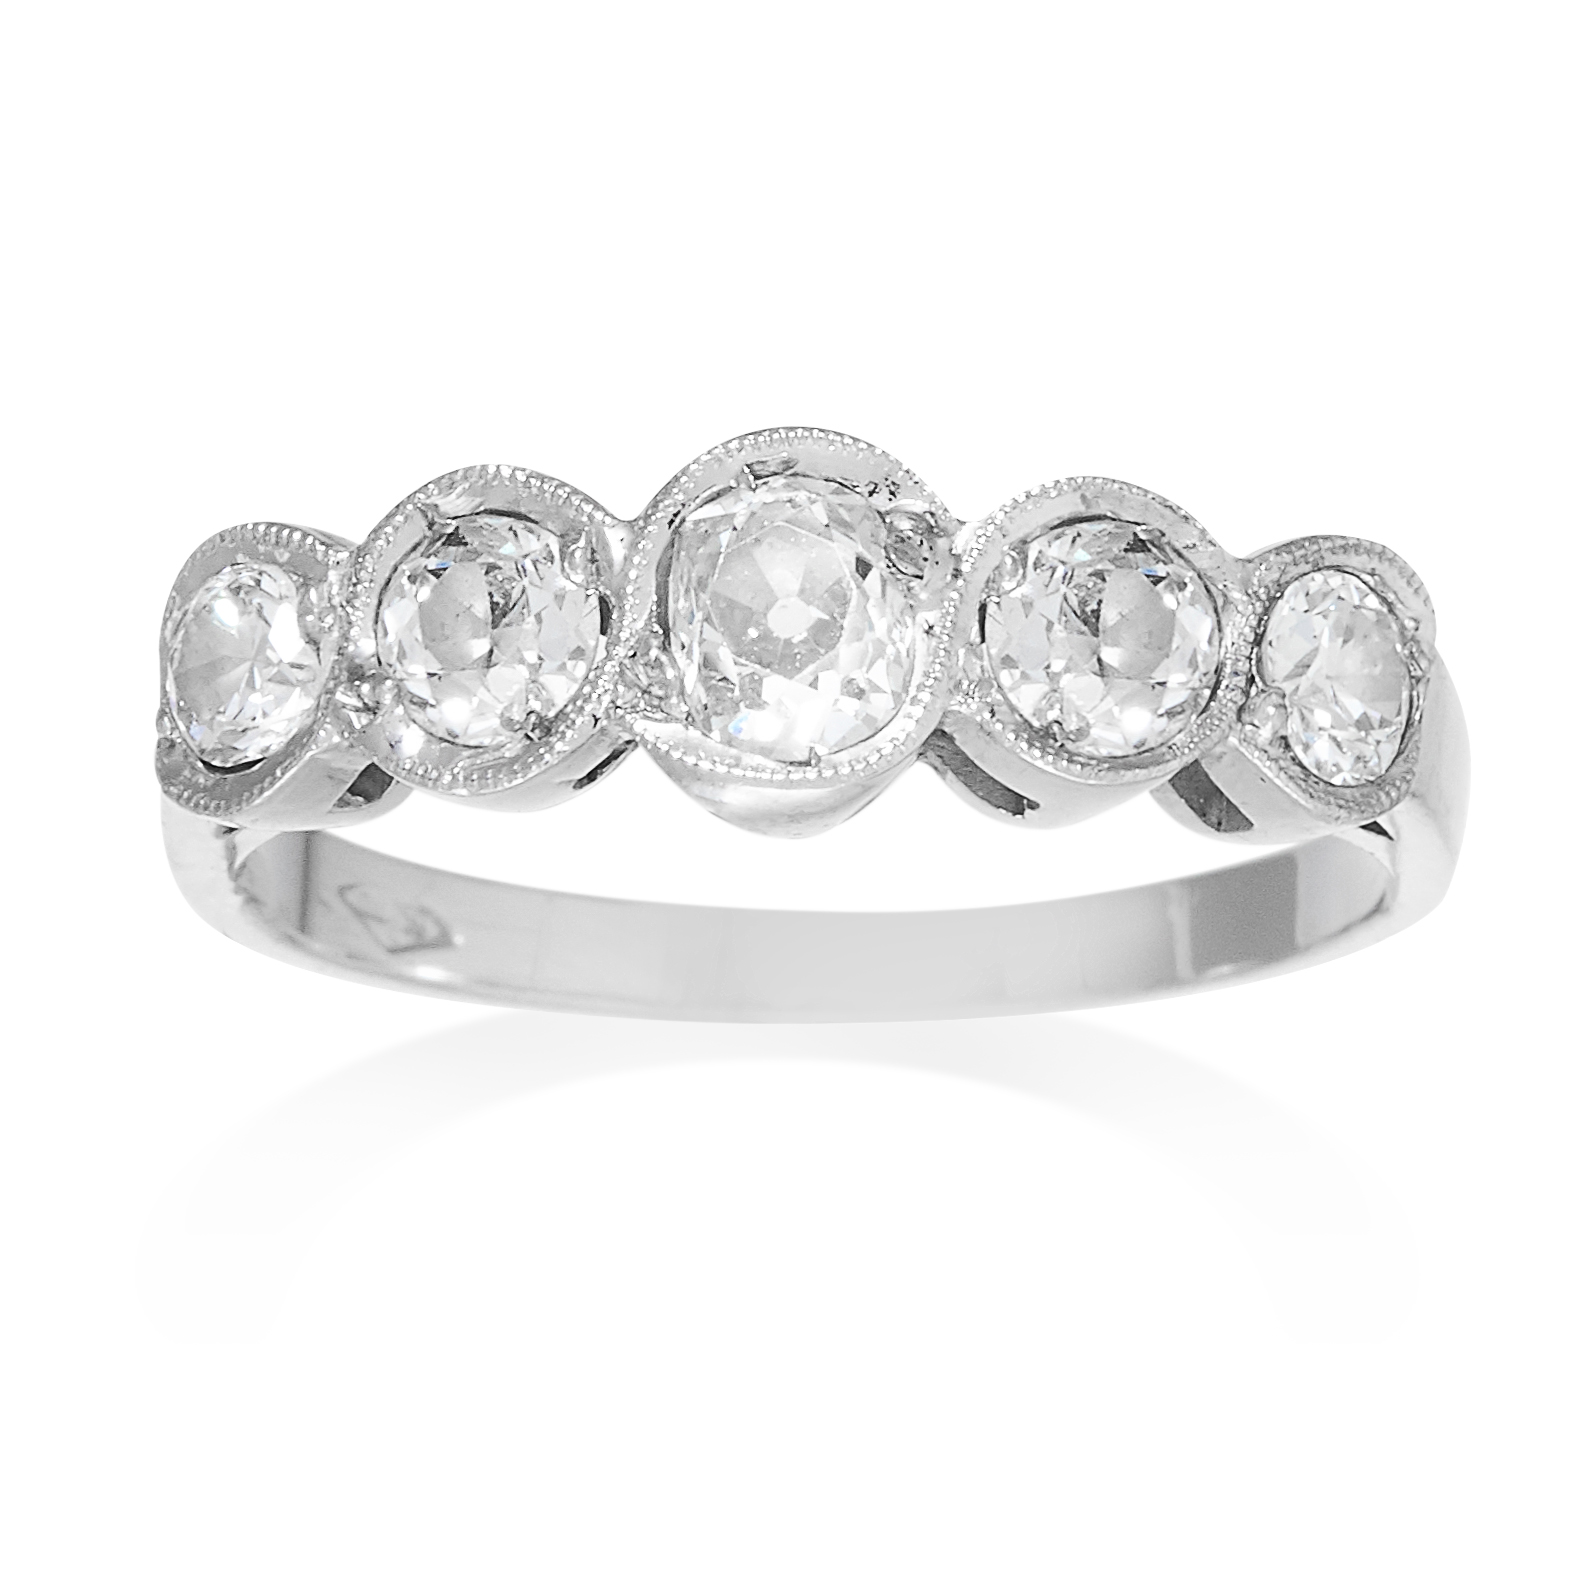 AN ANTIQUE DIAMOND FIVE STONE RING in platinum or white gold, set with a row of five graduated old